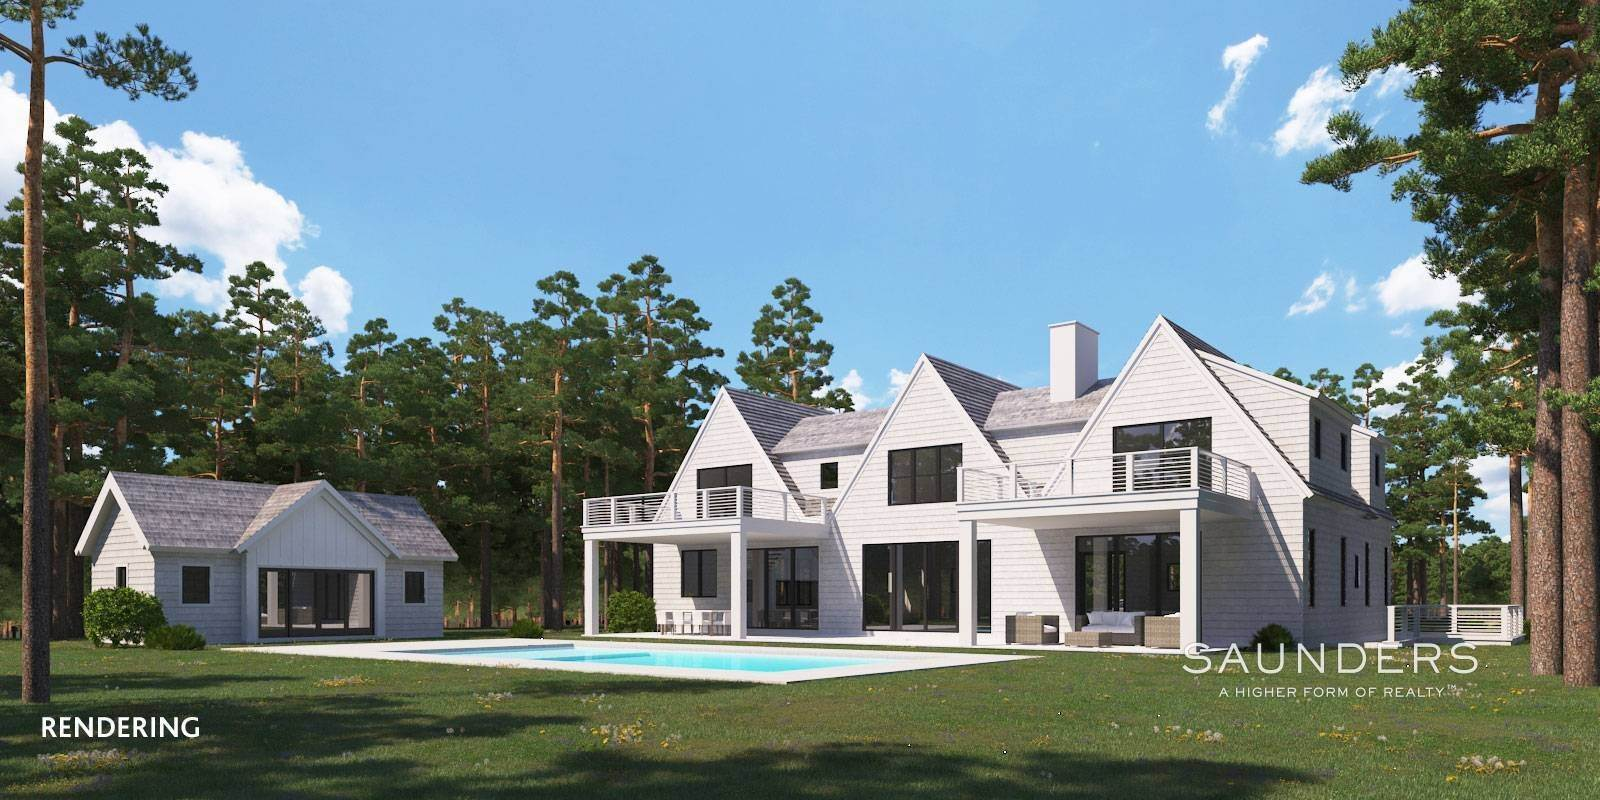 Single Family Homes for Sale at Sagaponack New Construction With Pool, Spa And Cabana 482 Wainscott Harbor Road, Sagaponack, Southampton Town, NY 11962